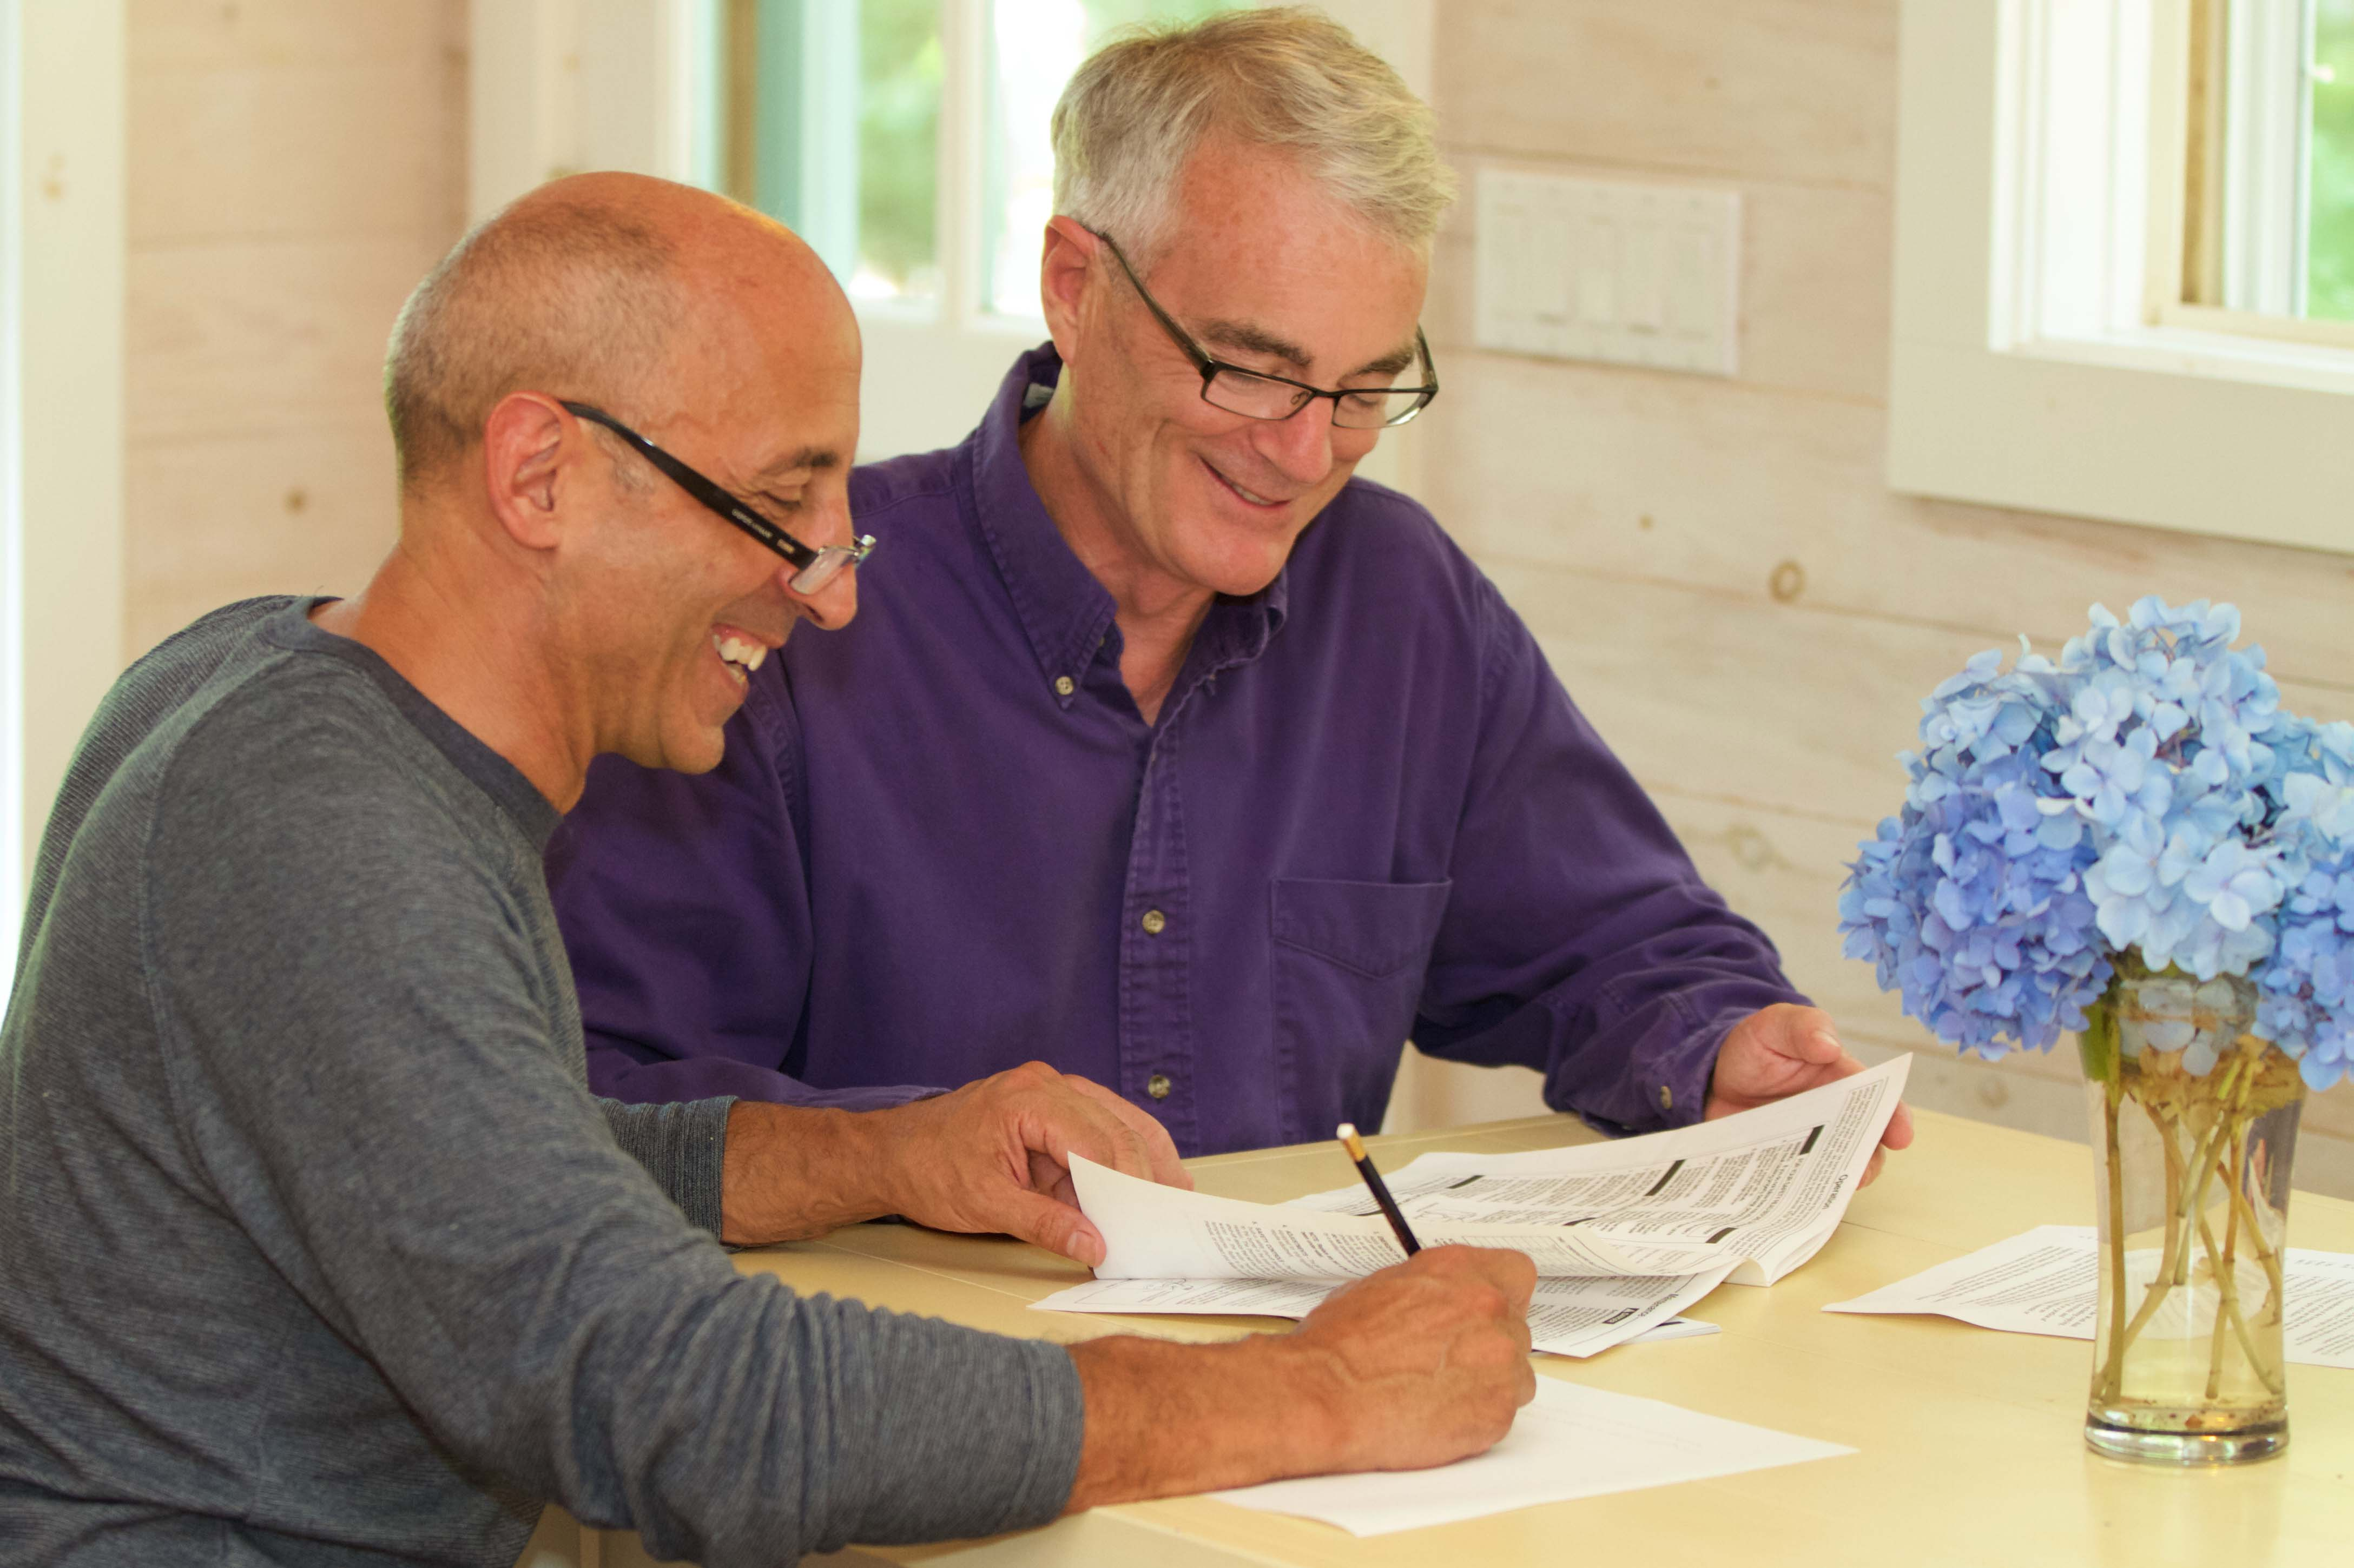 three people smiling and looking at paper